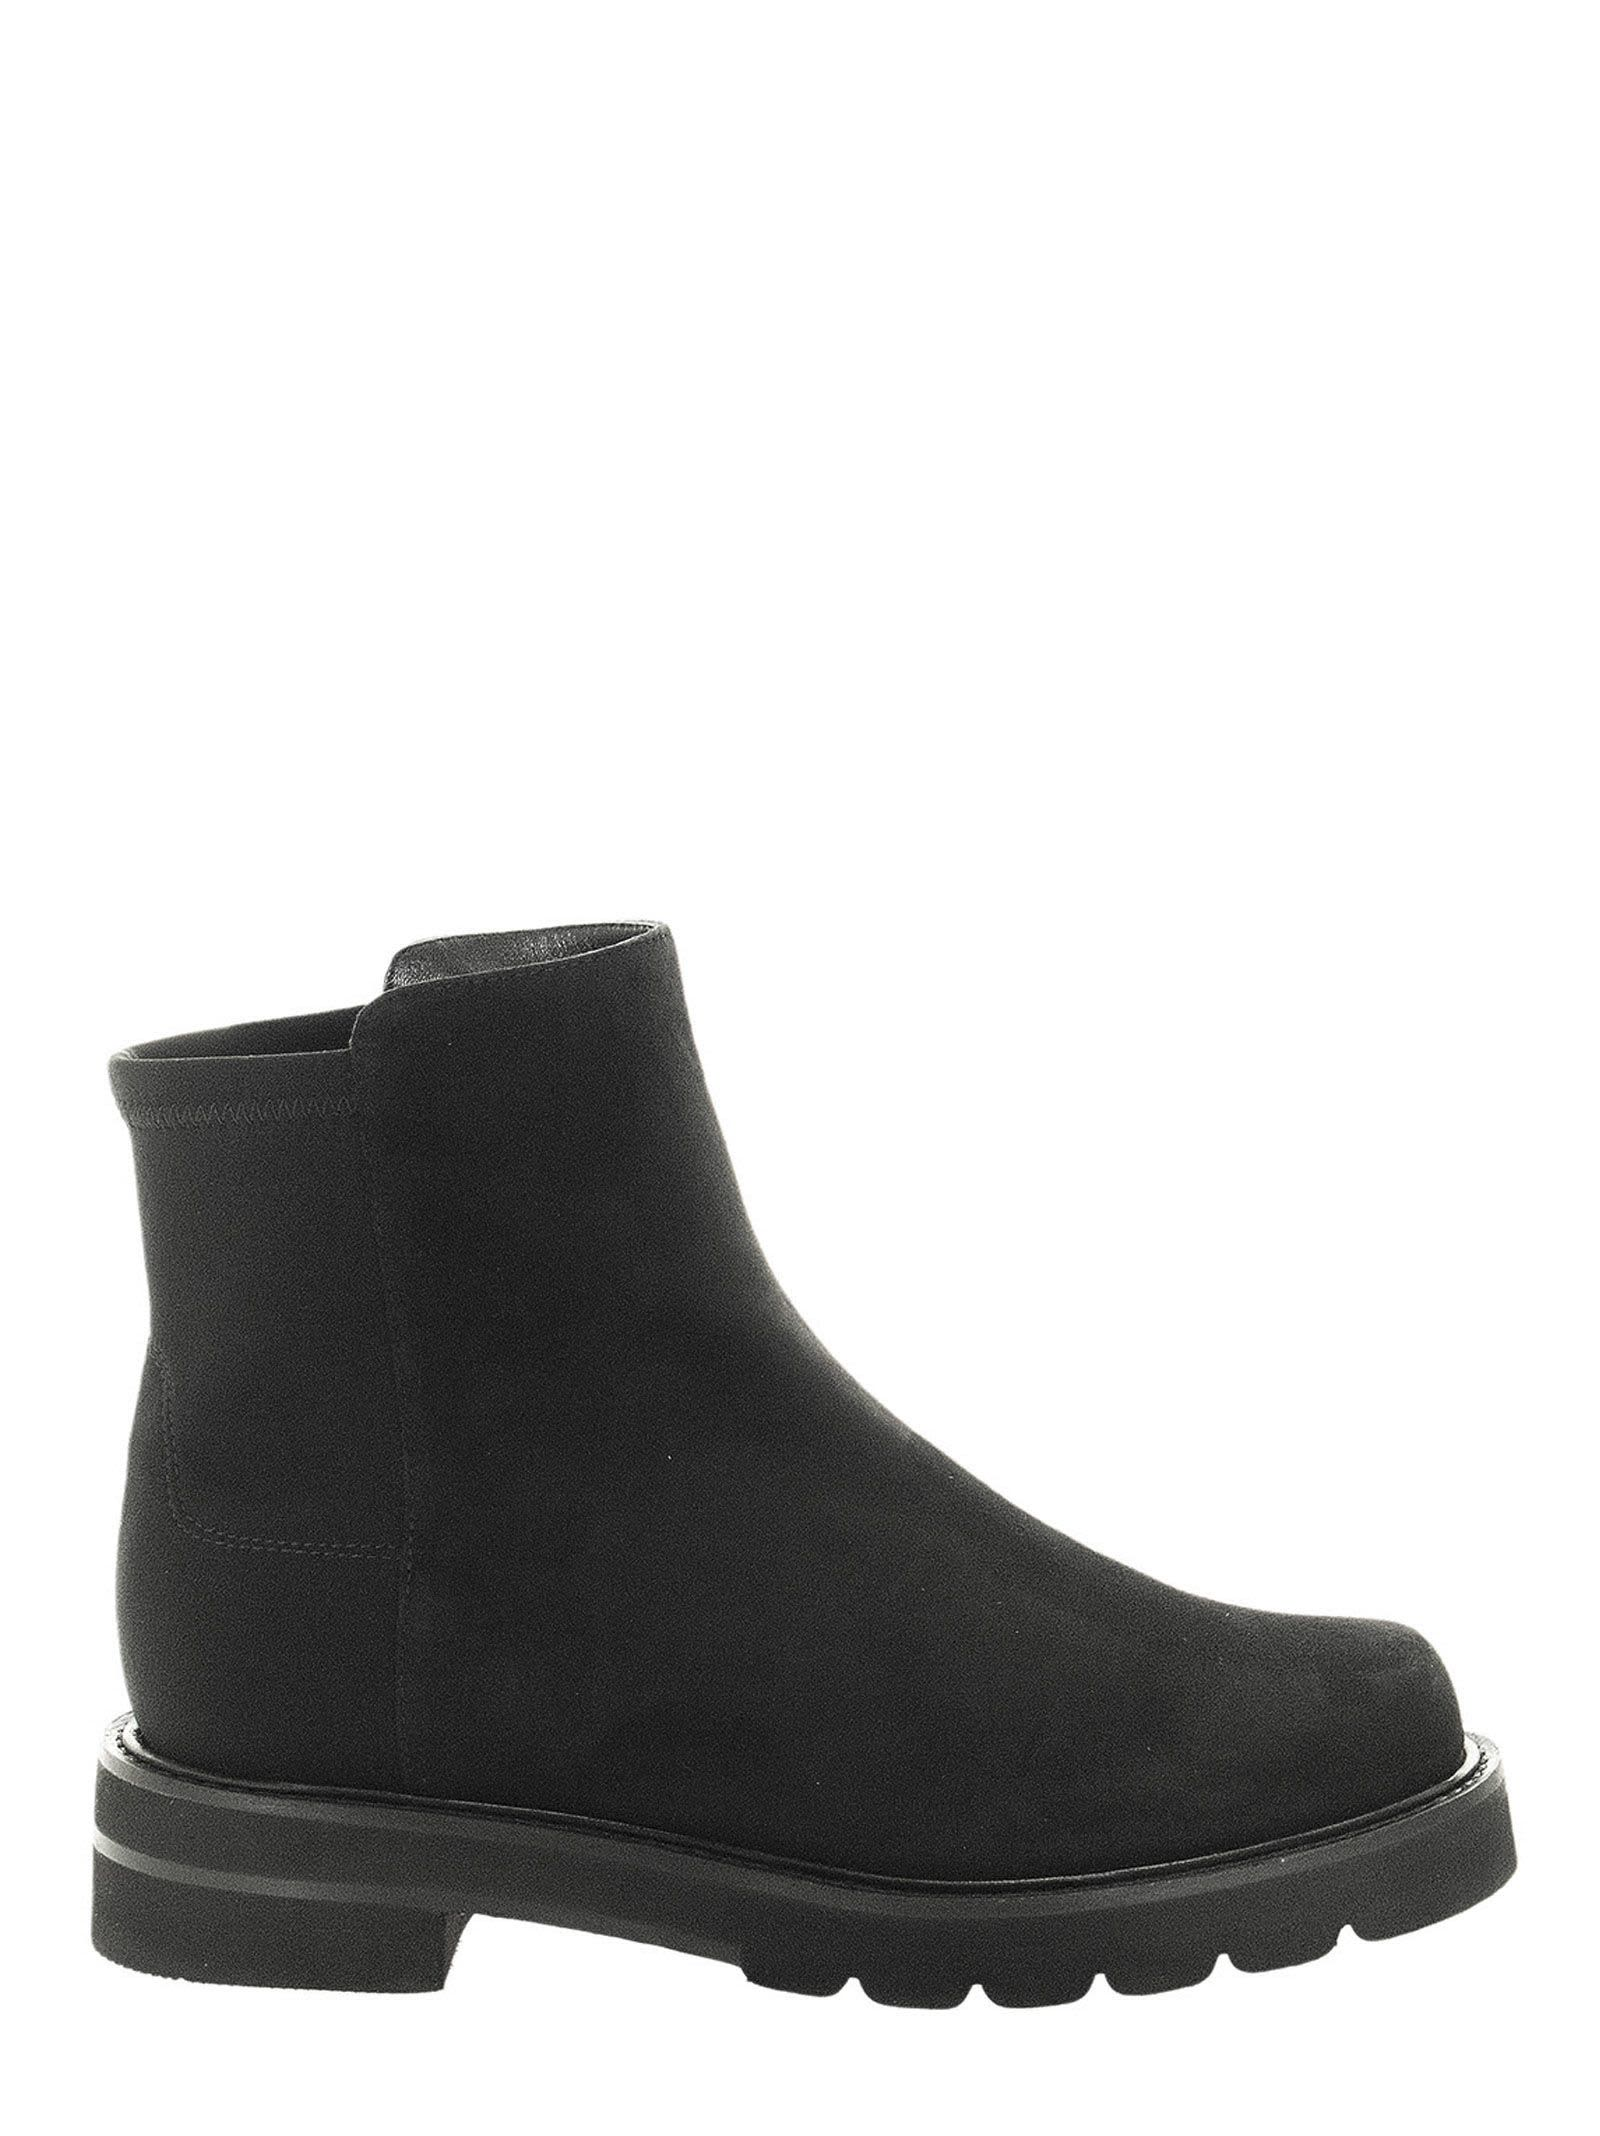 Buy Stuart Weitzman Chelsea 5050 Lift - Suede Ankle Boot online, shop Stuart Weitzman shoes with free shipping